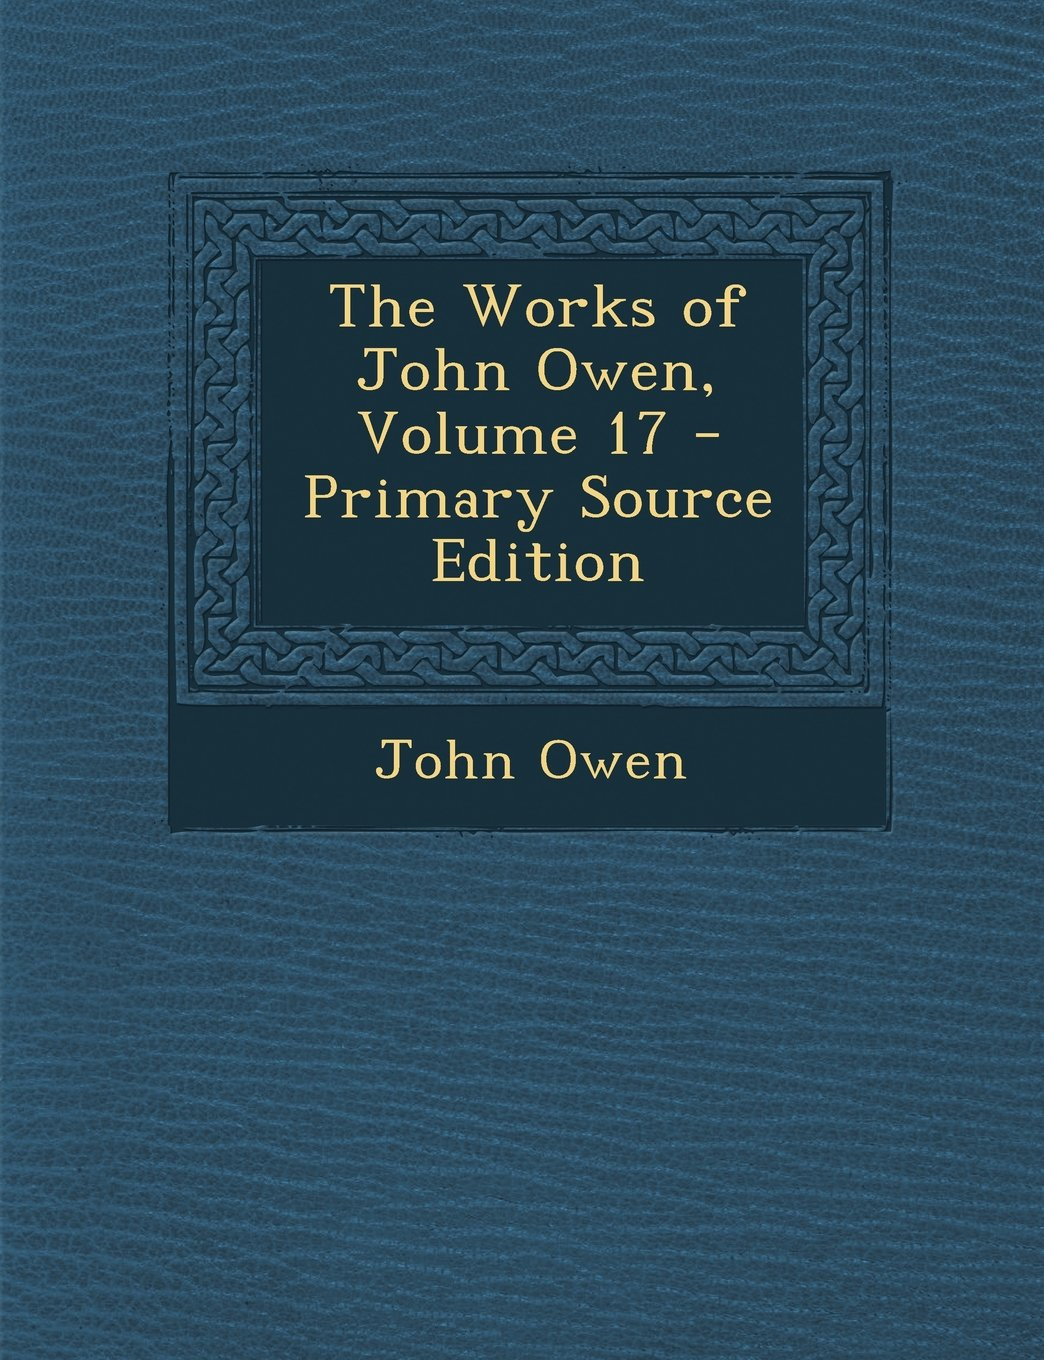 The Works of John Owen, Volume 17 - Primary Source Edition PDF